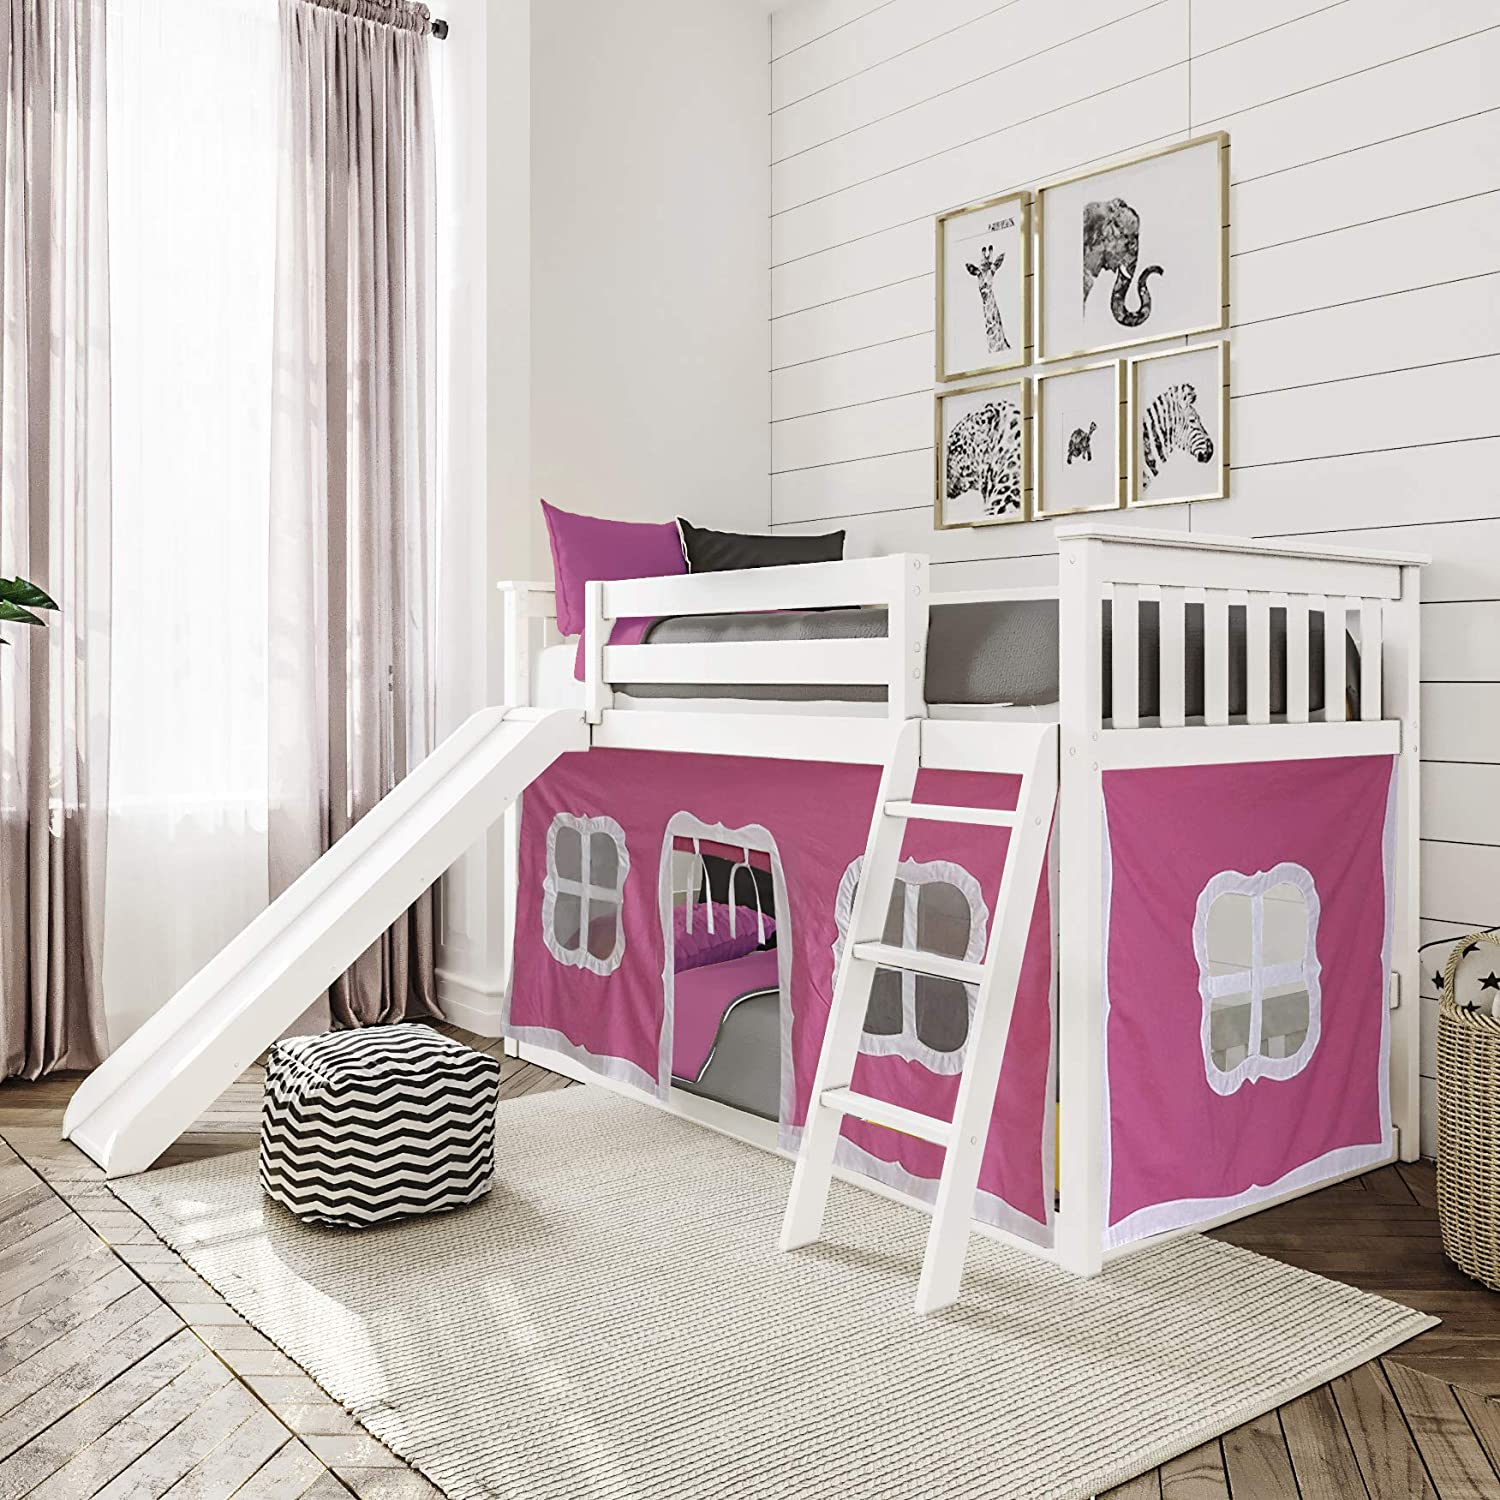 Max 59% OFF Max Lily Low Bunk Bed with Whit and Some reservation Slide Pink Twin Curtains